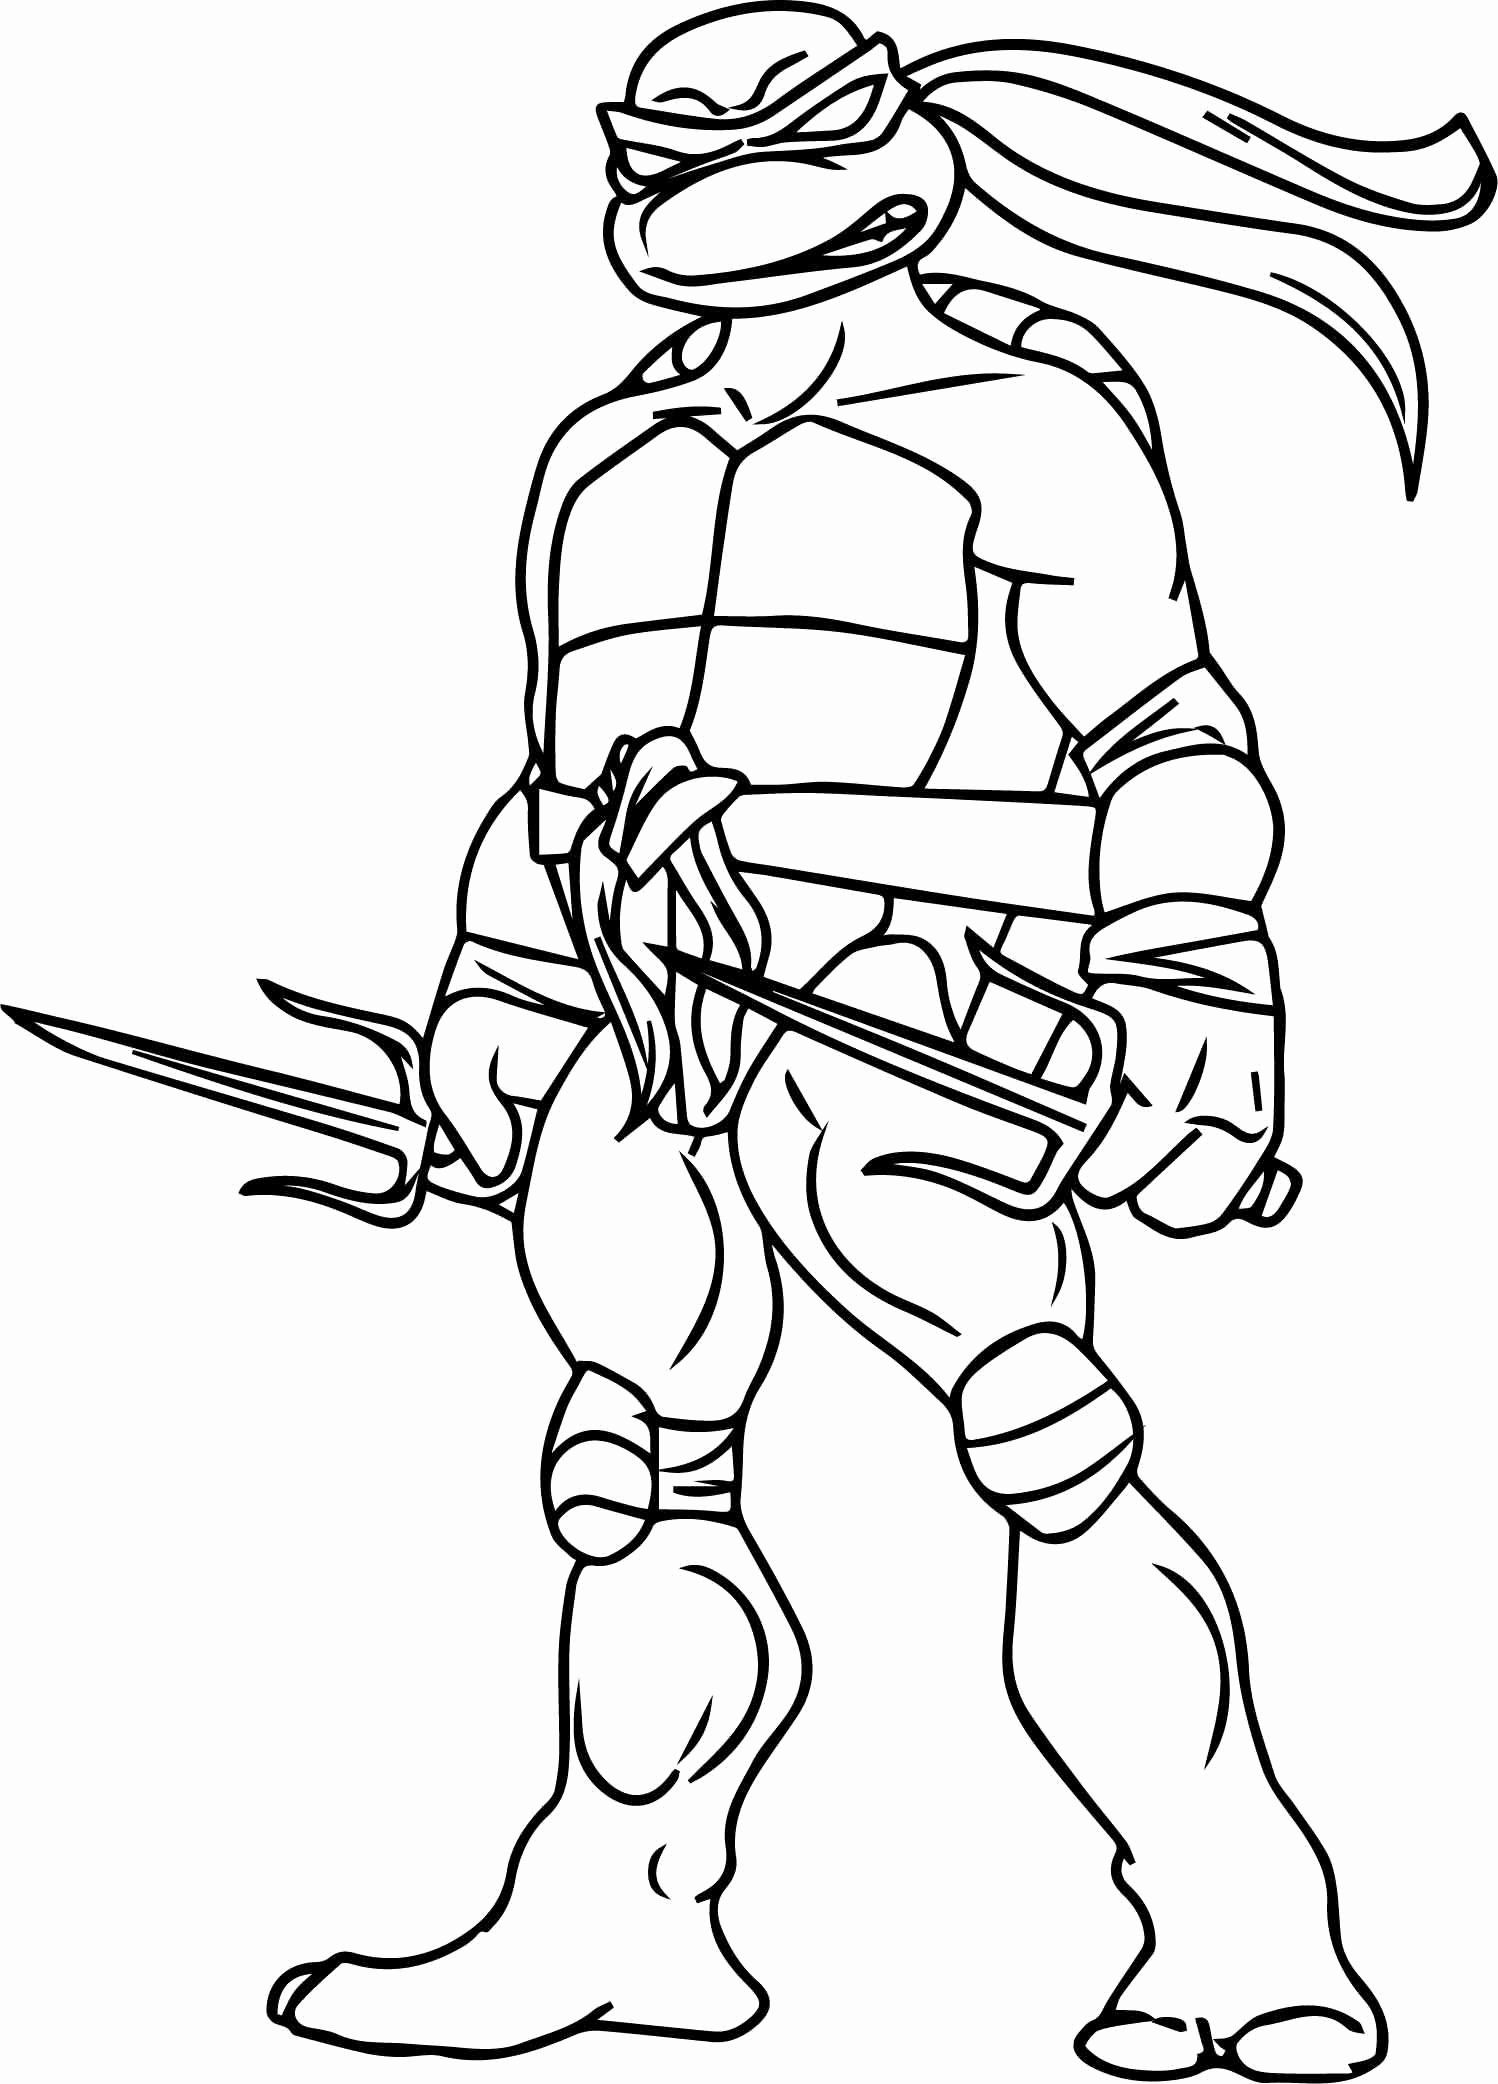 Ninja Turtle Coloring Pictures Inspirational Coloring Pages Cool The Teenage Mutant Ni Turtle Coloring Pages Ninja Turtle Coloring Pages Donatello Ninja Turtle